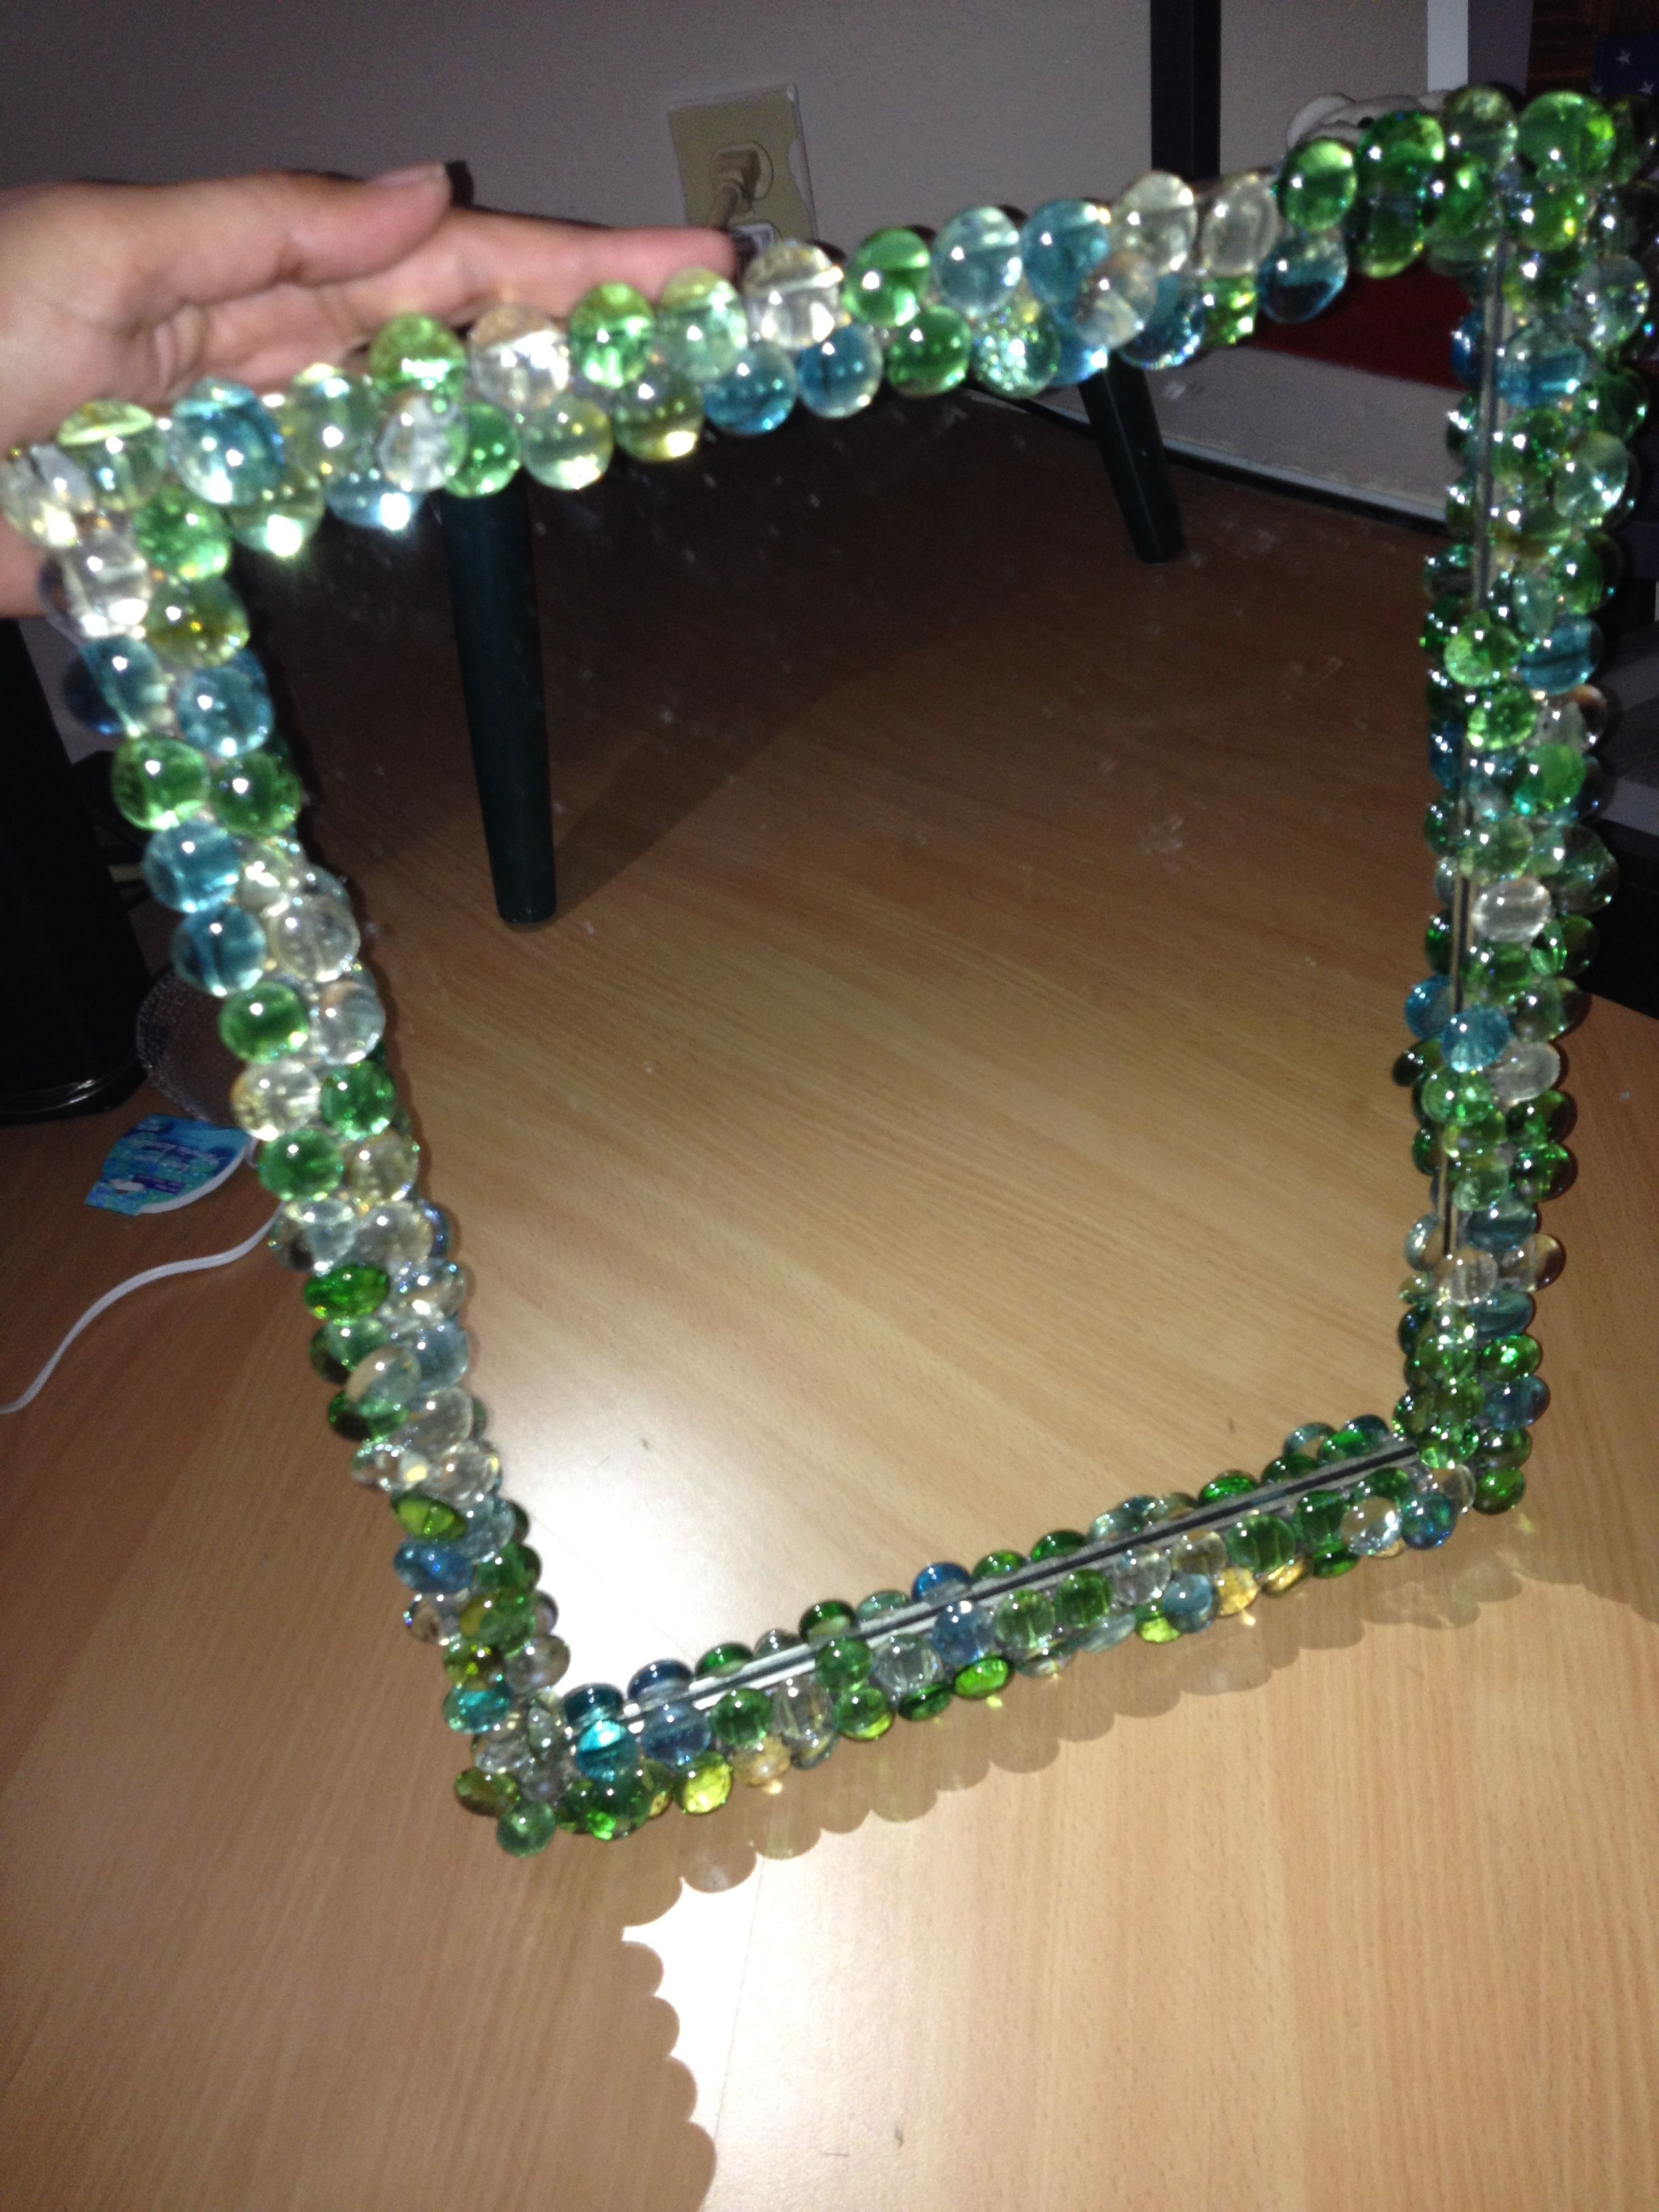 Bejeweled a cheap mirror with dollars store glass pebbles